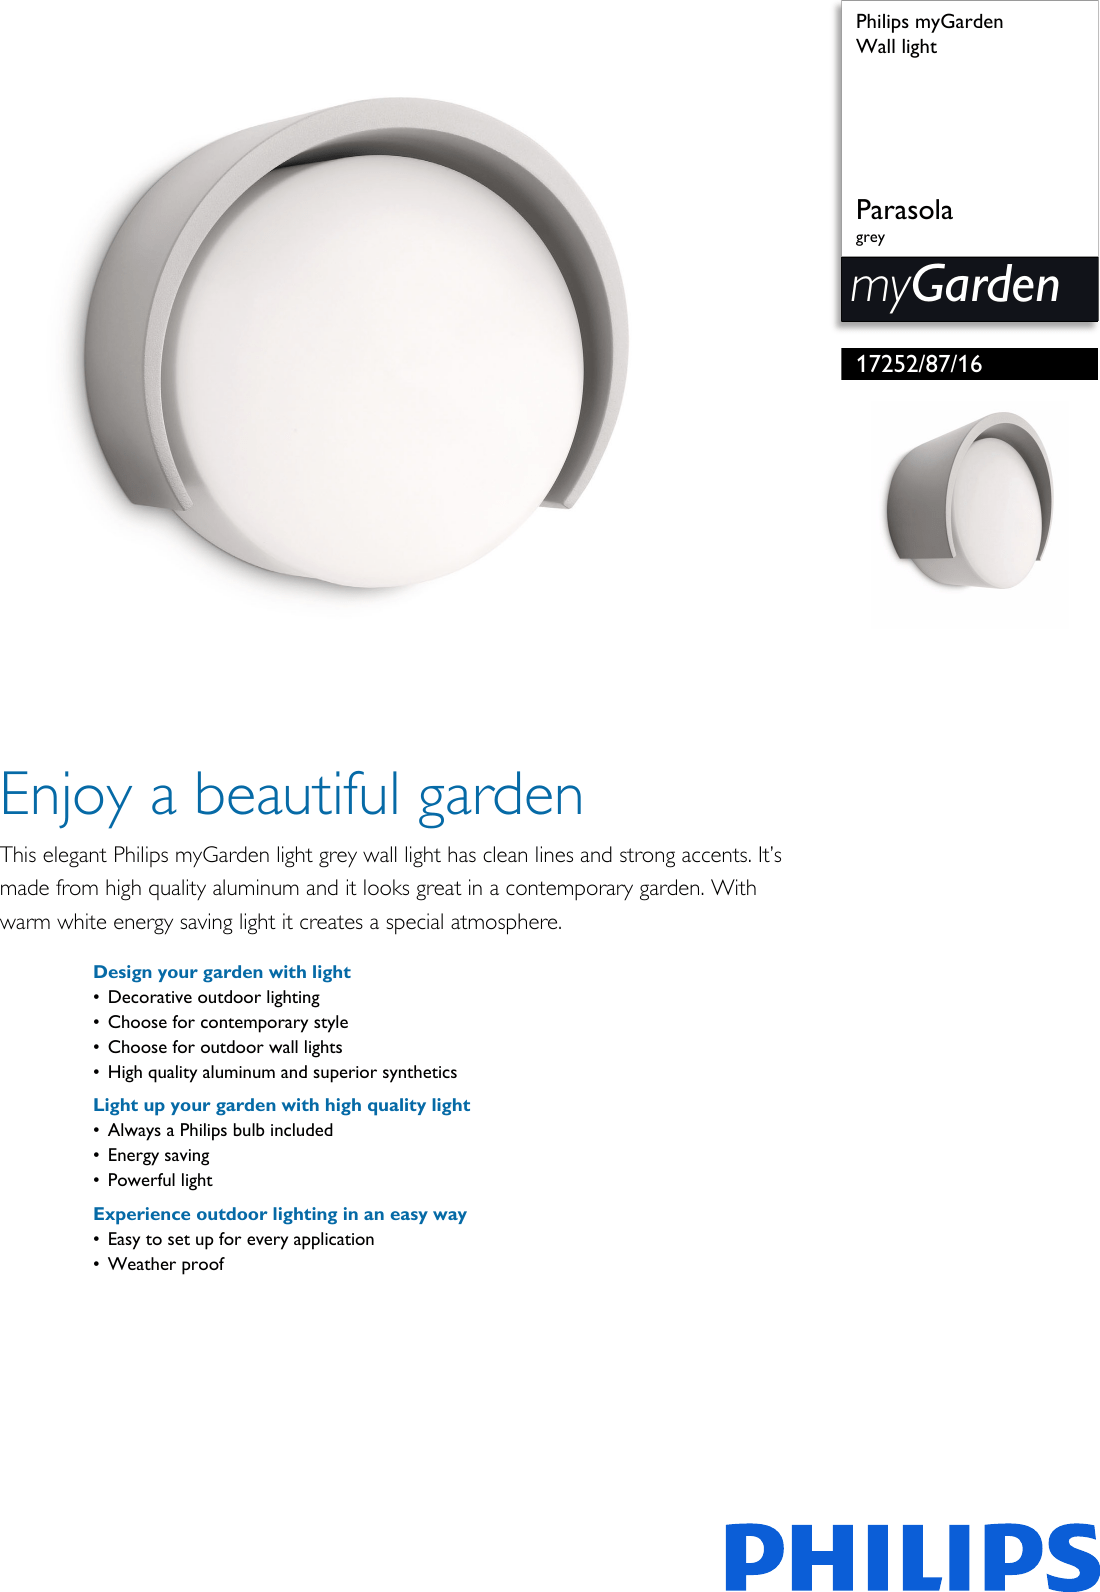 Philips Mygarden Outdoor Wall Light Philips 172528716 Wall Light Leaflet Pss